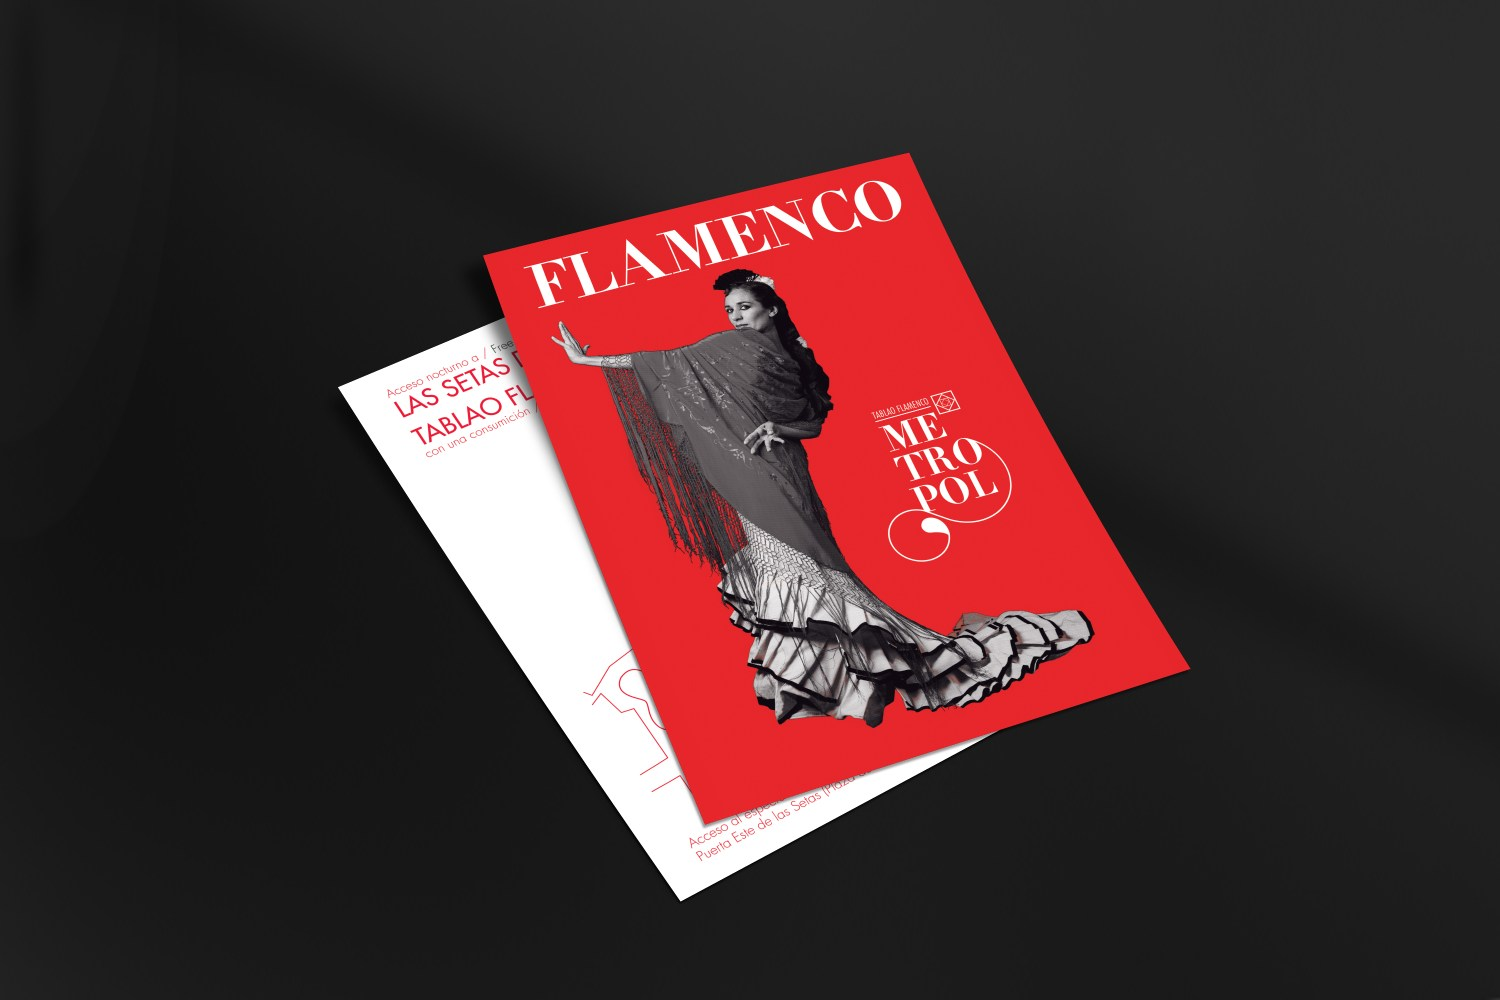 TABLAO FLAMENCO METROPOL _ Poster Design - David Guillén